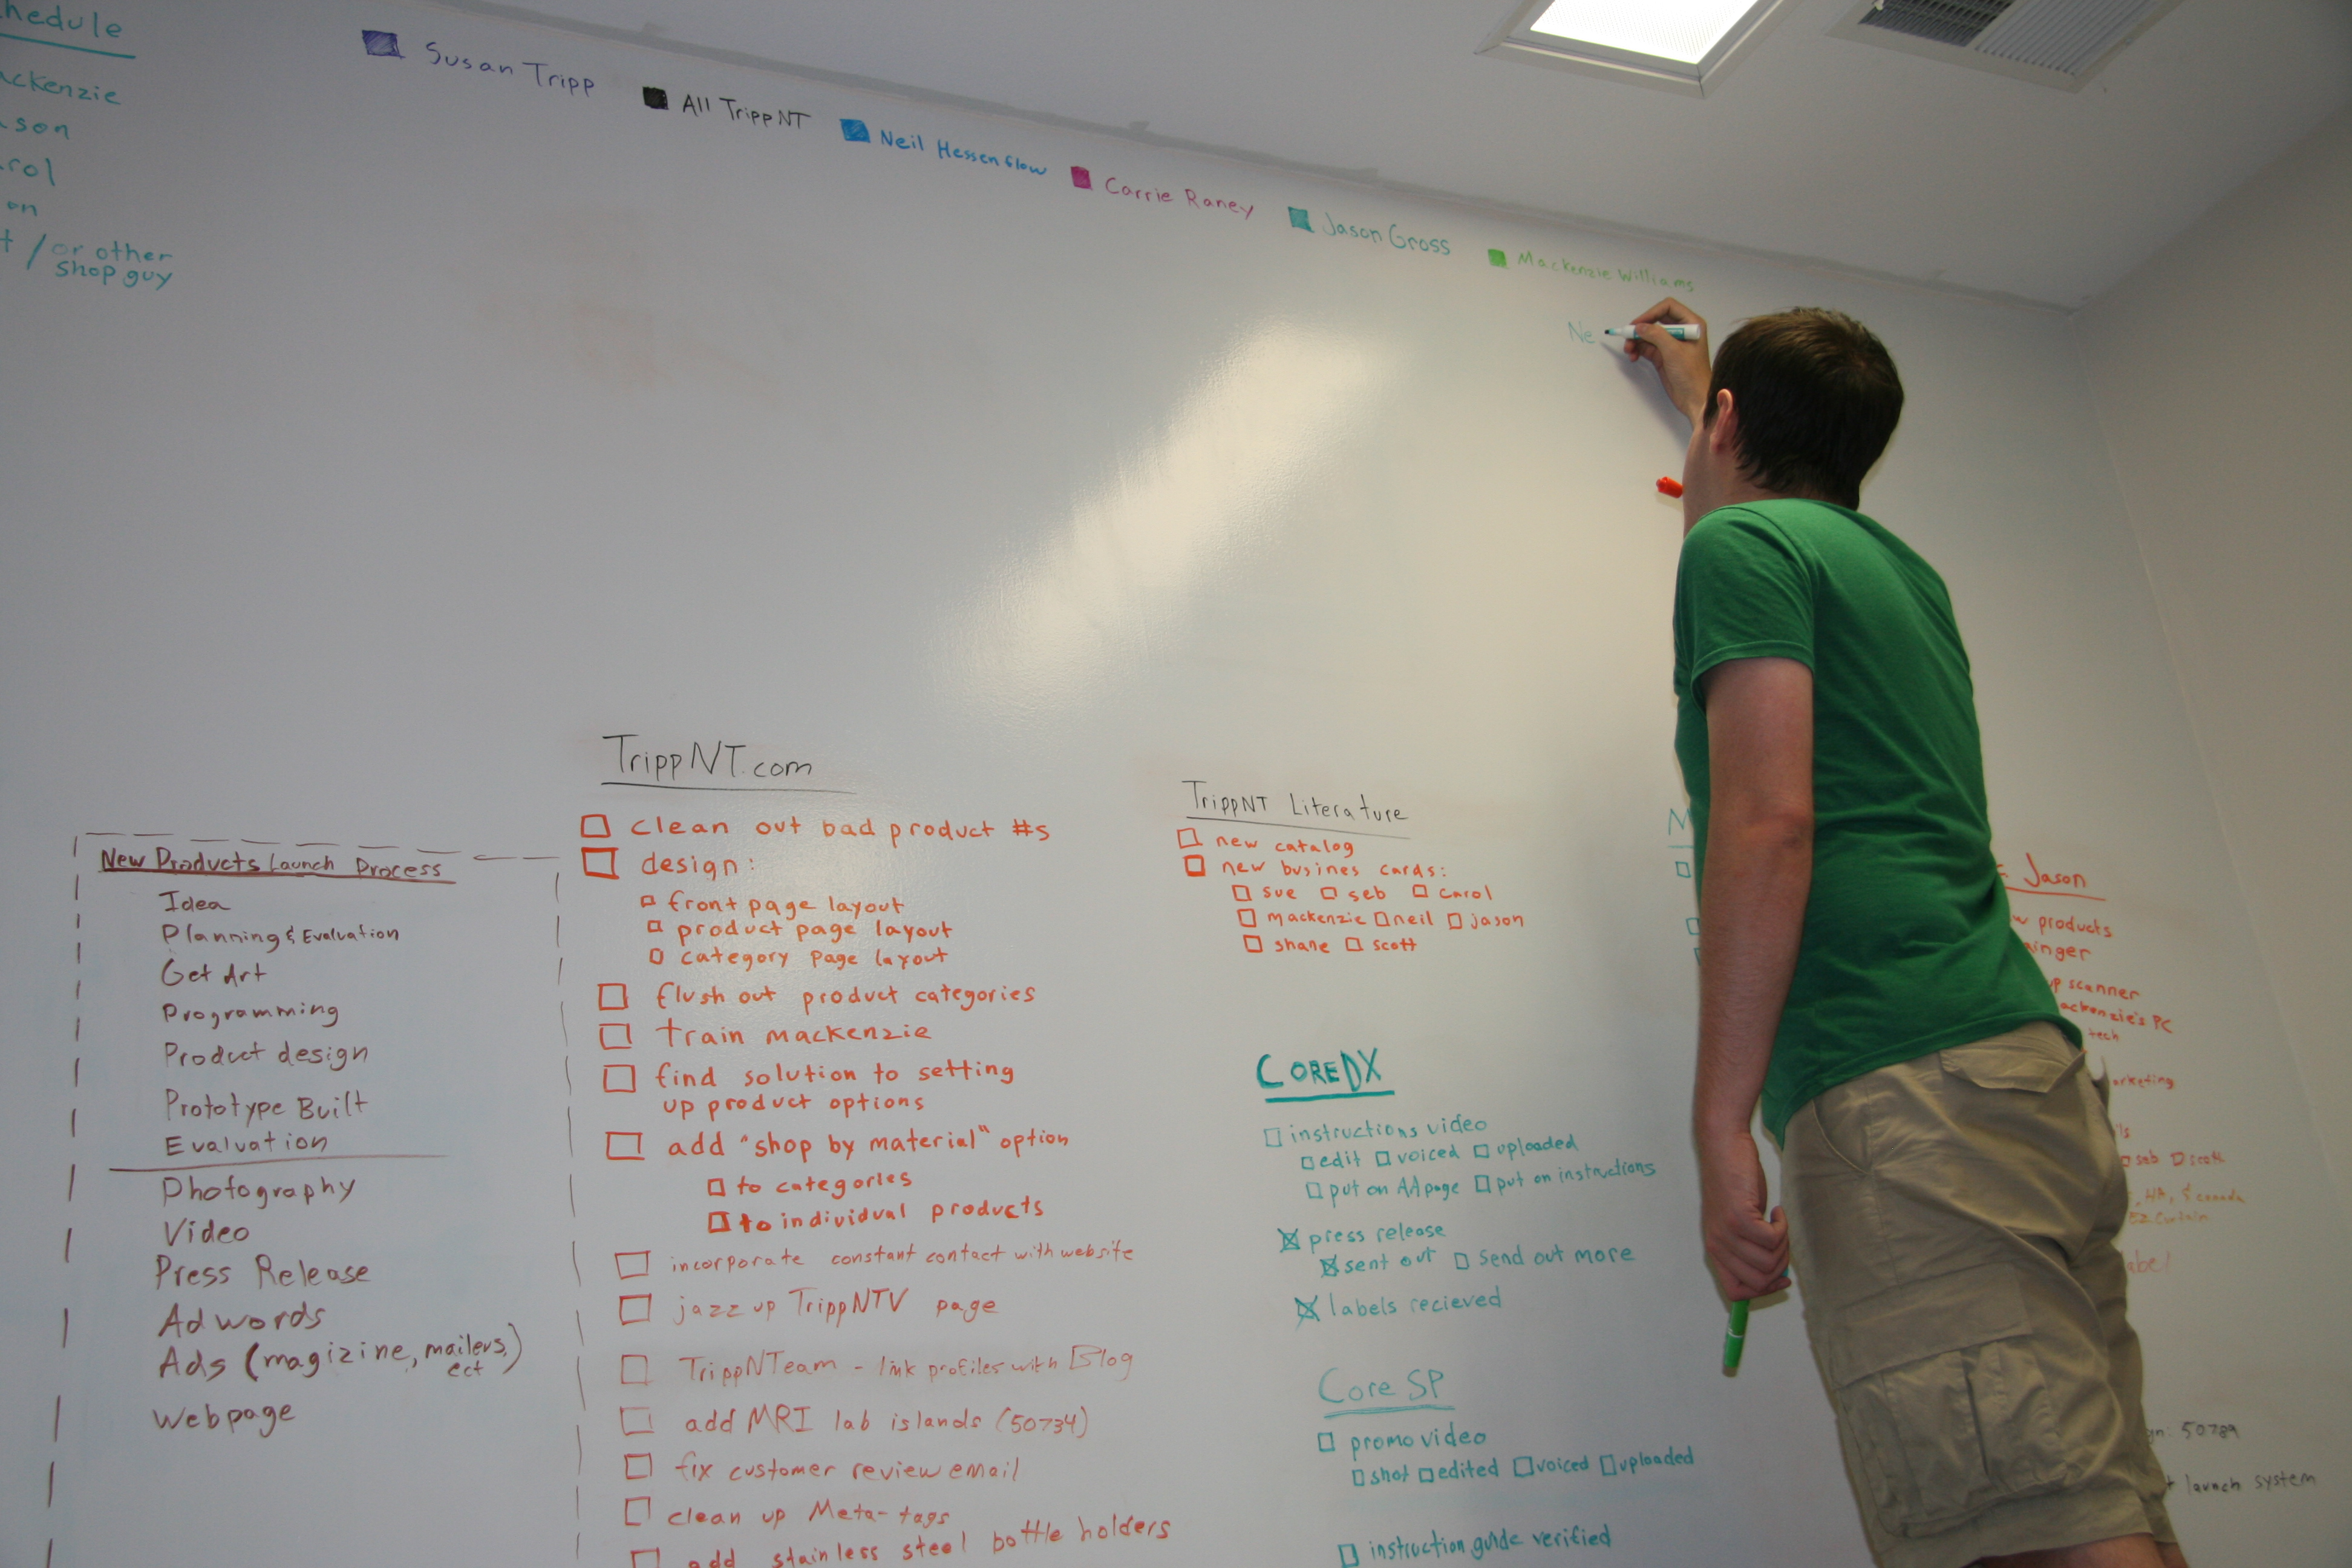 How To Turn A Wall Into A Whiteboard Project Management Formmetry